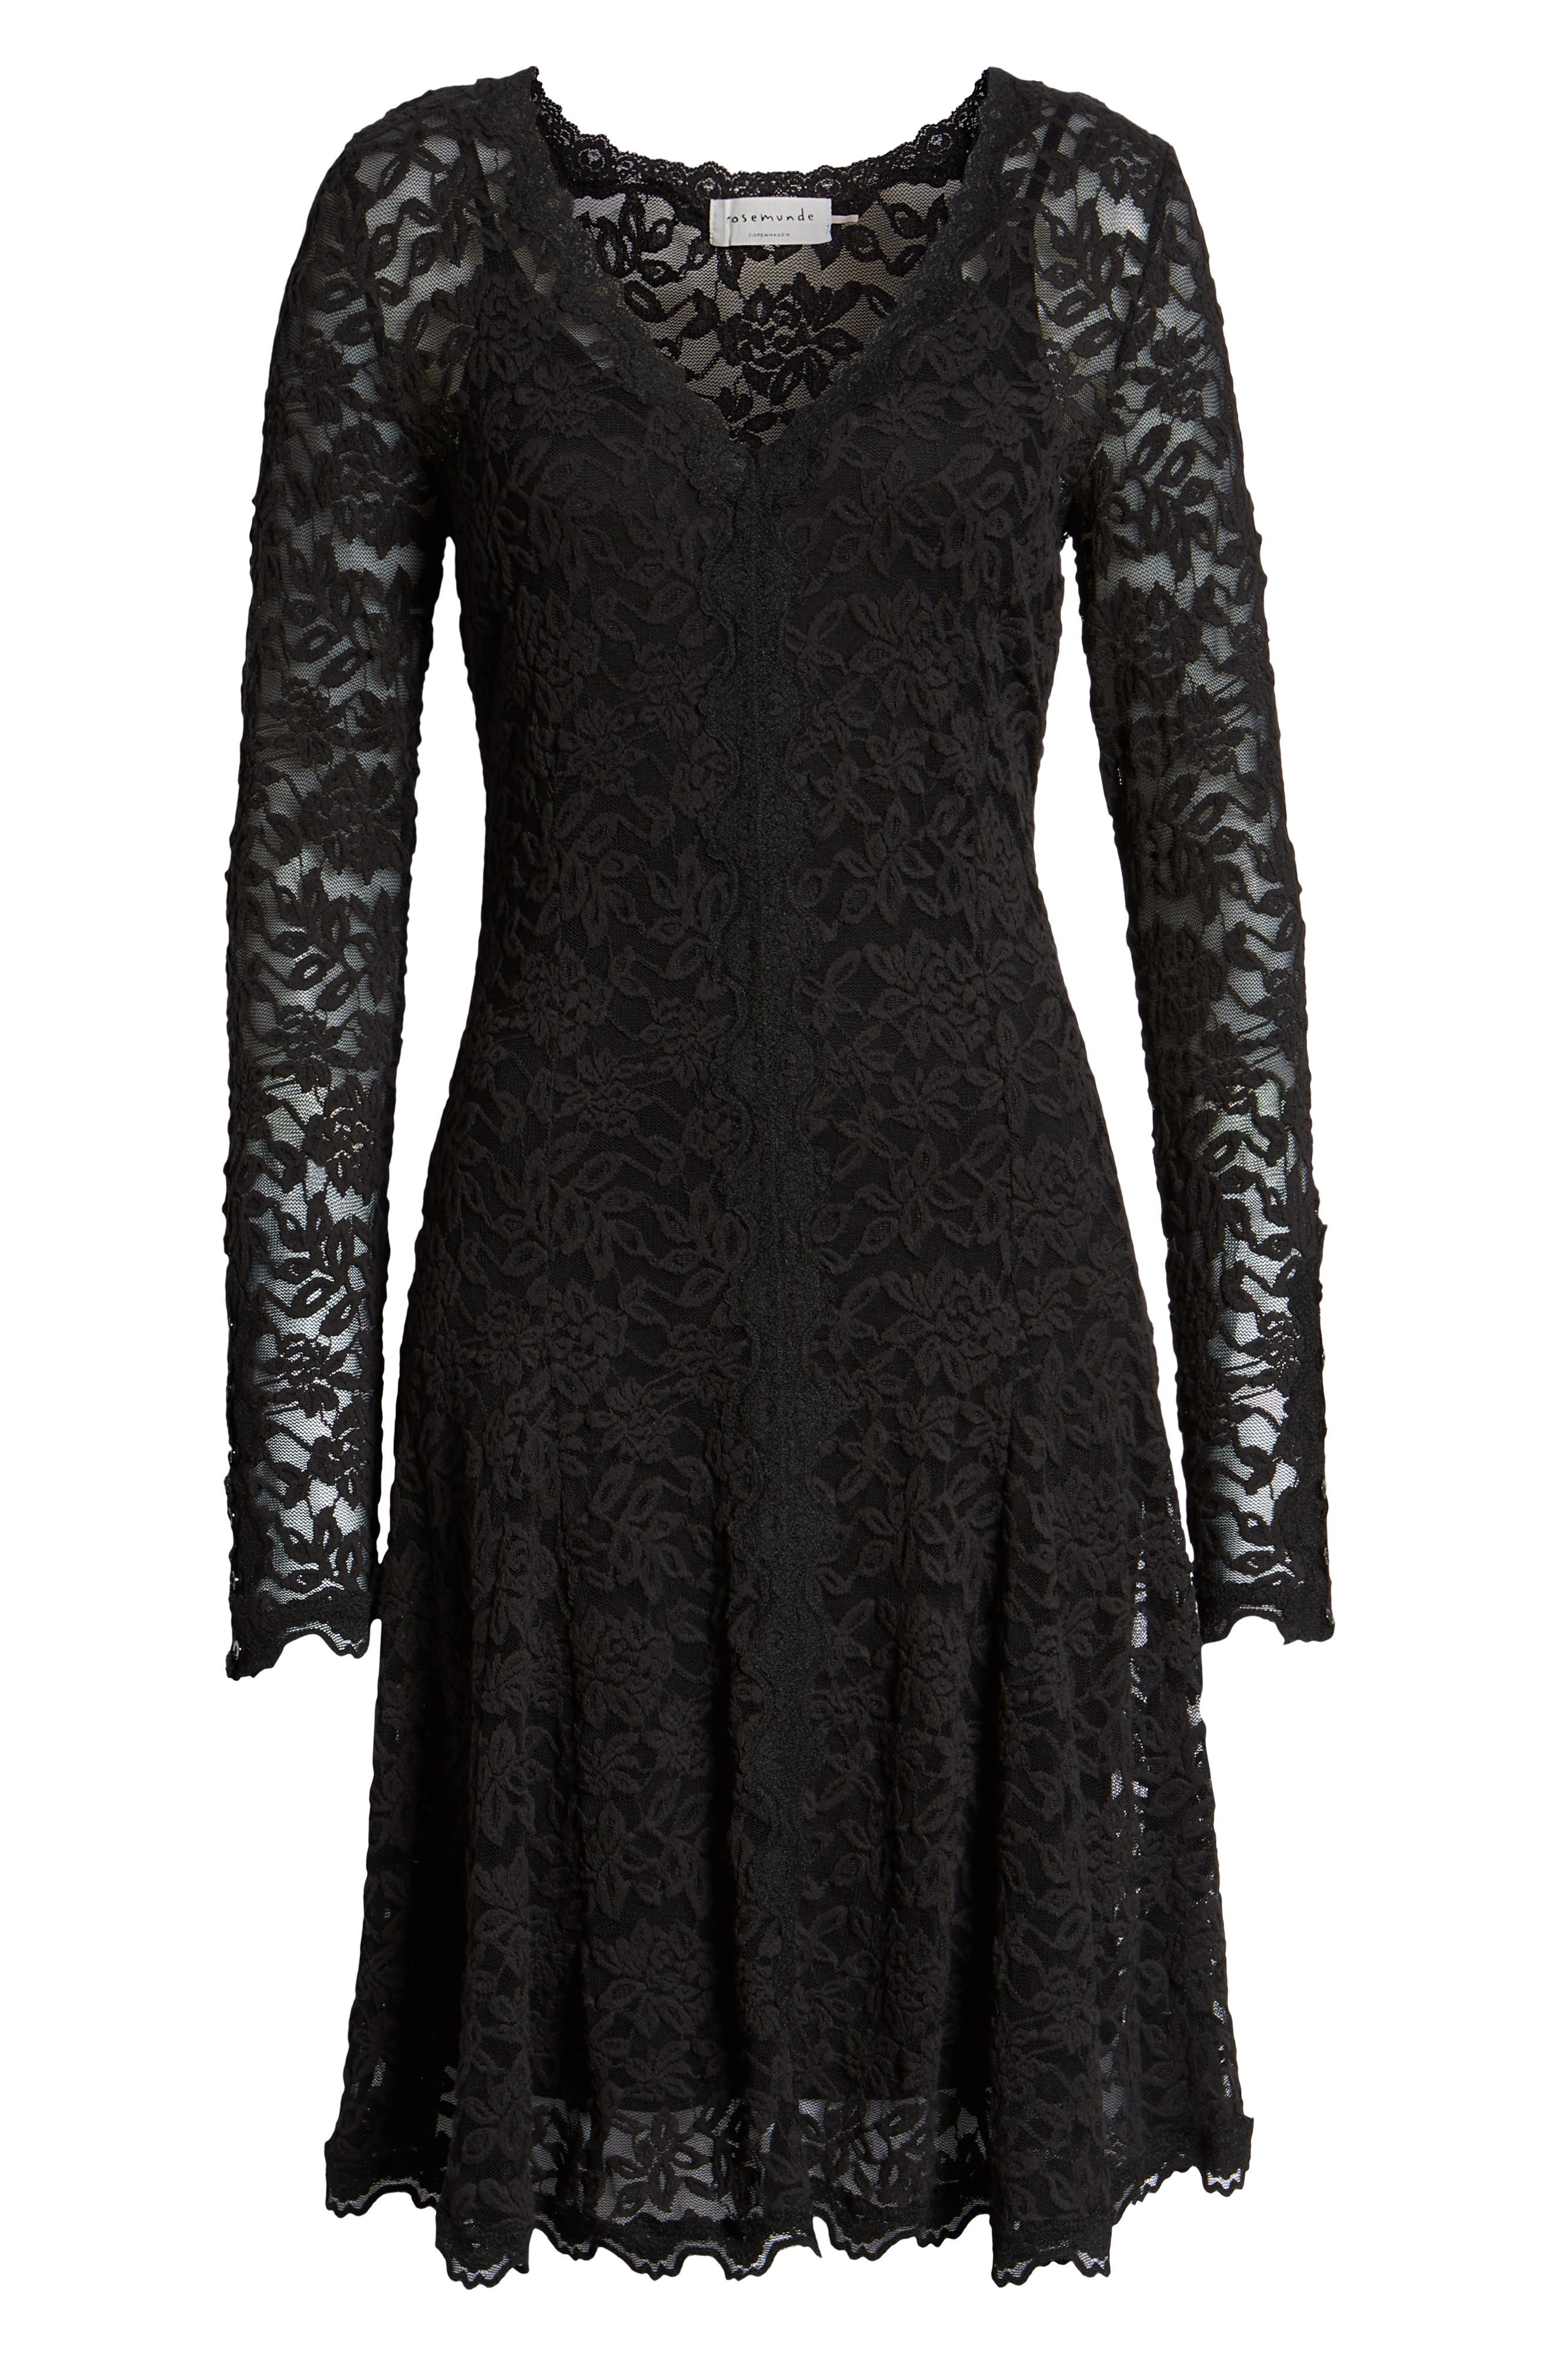 ROSEMUNDE, Delicia Fit & Flare Lace Dress, Alternate thumbnail 7, color, BLACK